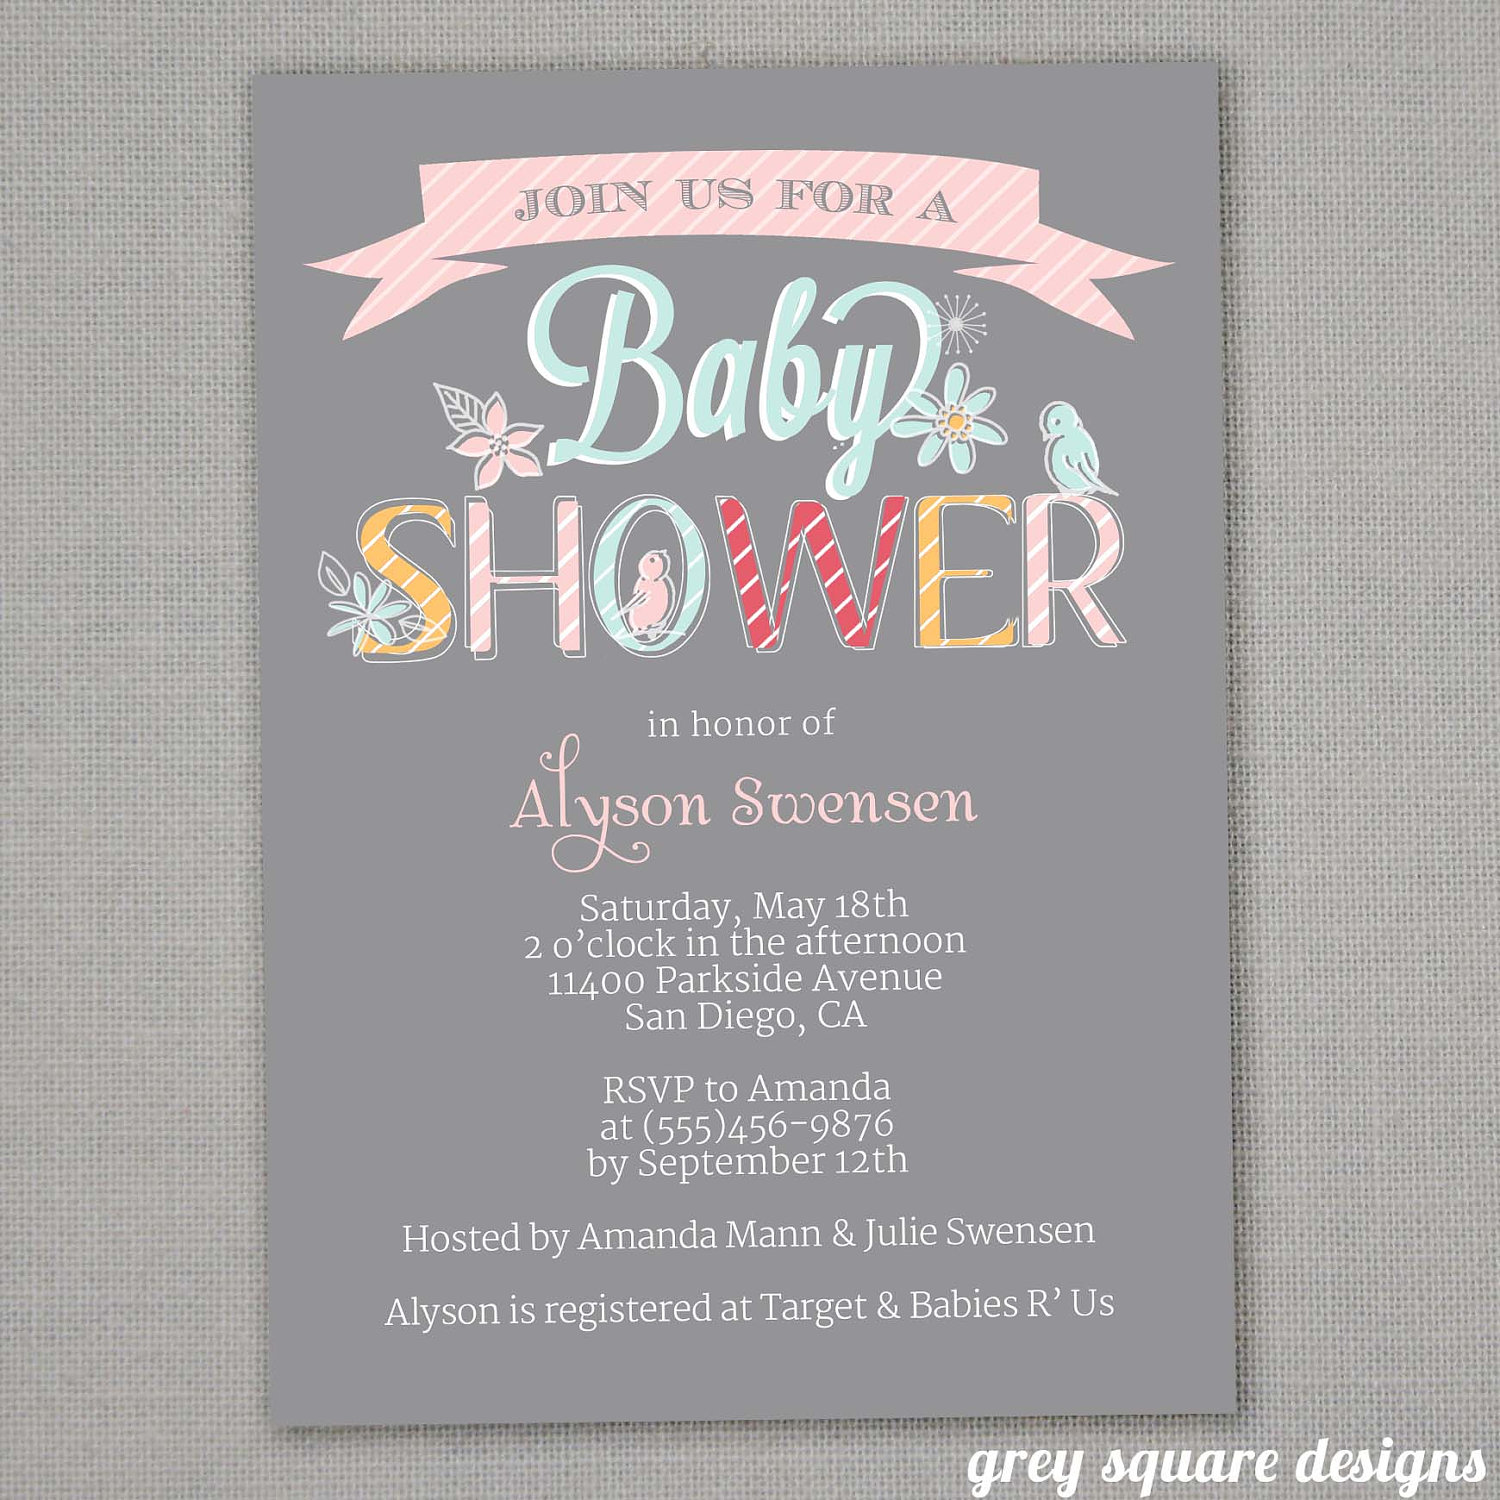 Invitations giraffe baby shower girl baby shower stork baby shower